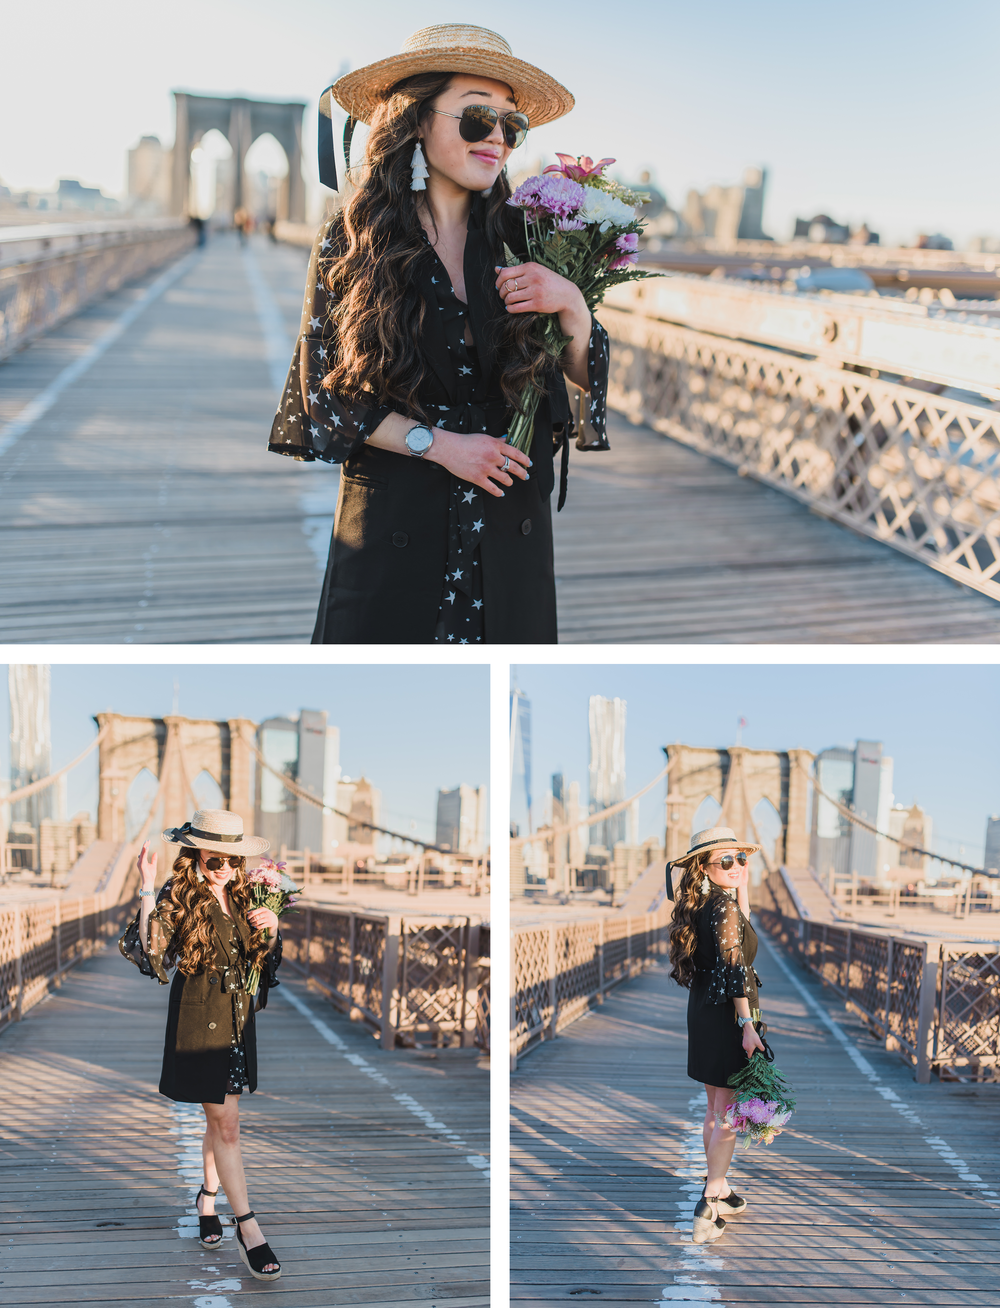 Grace Lee Brooklyn Bridge_Gallery 1.png